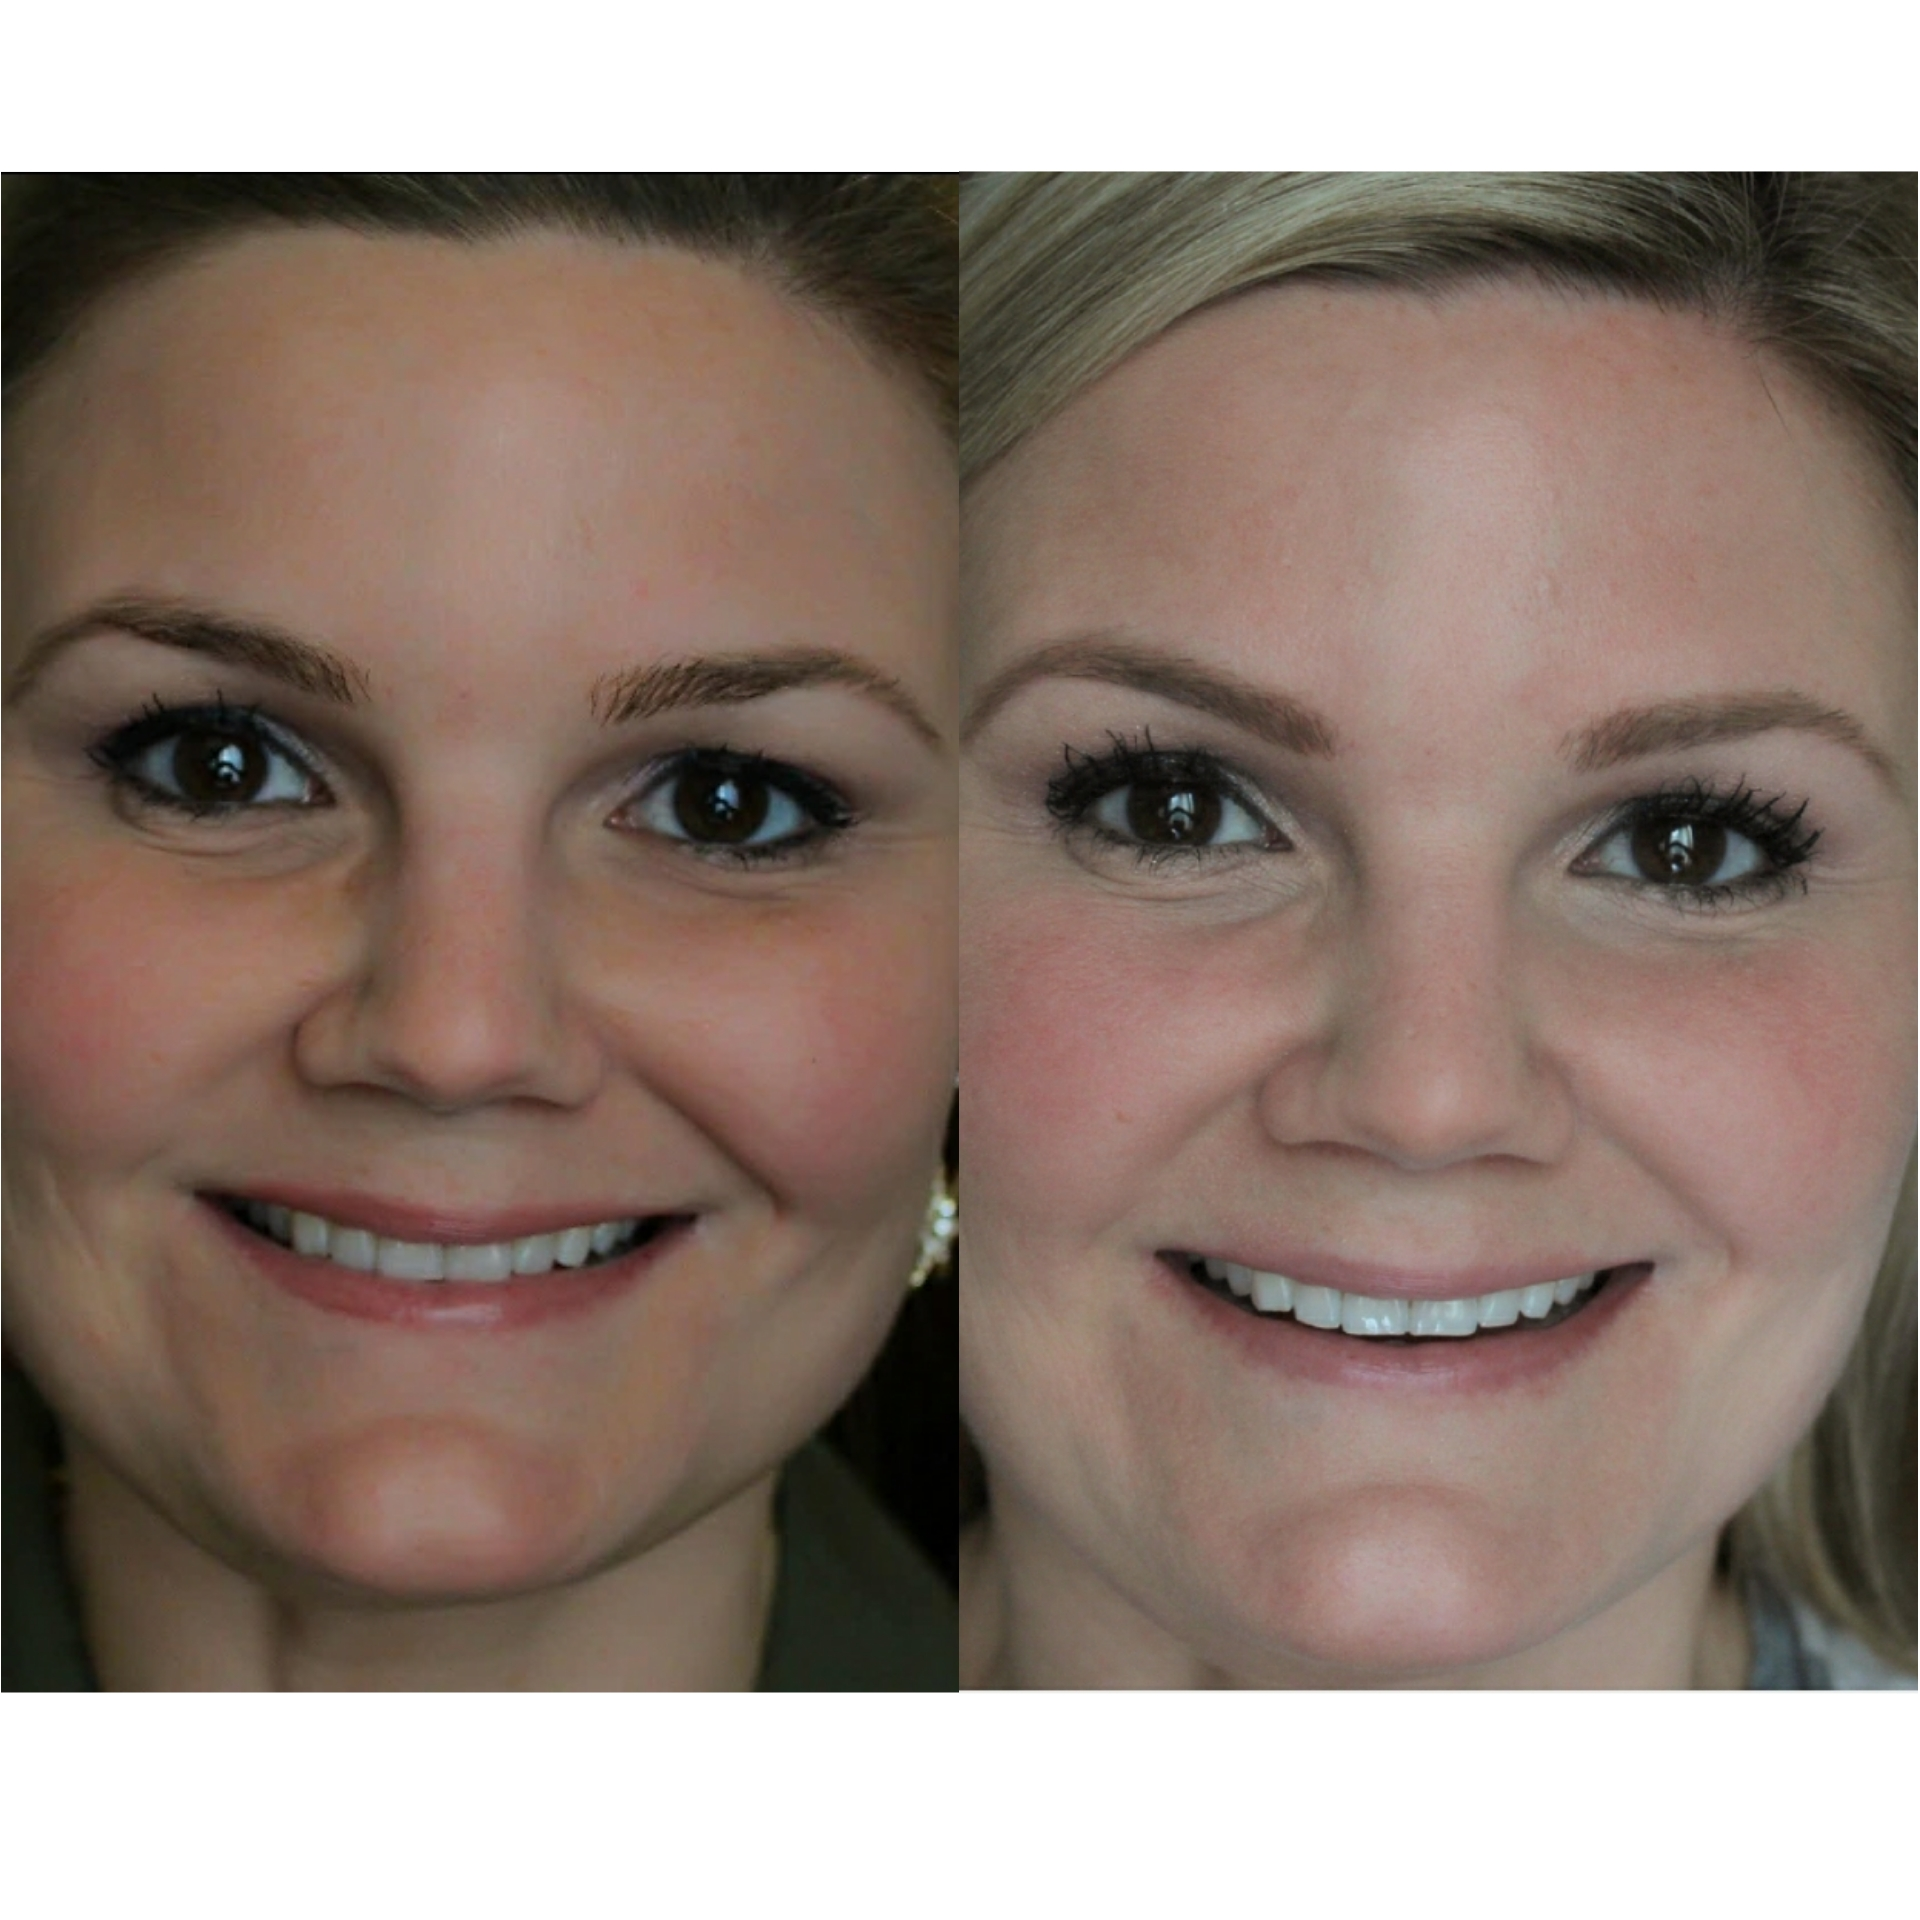 At-home-teeth-whitening-does-it-work-fabulouslyoverdressed